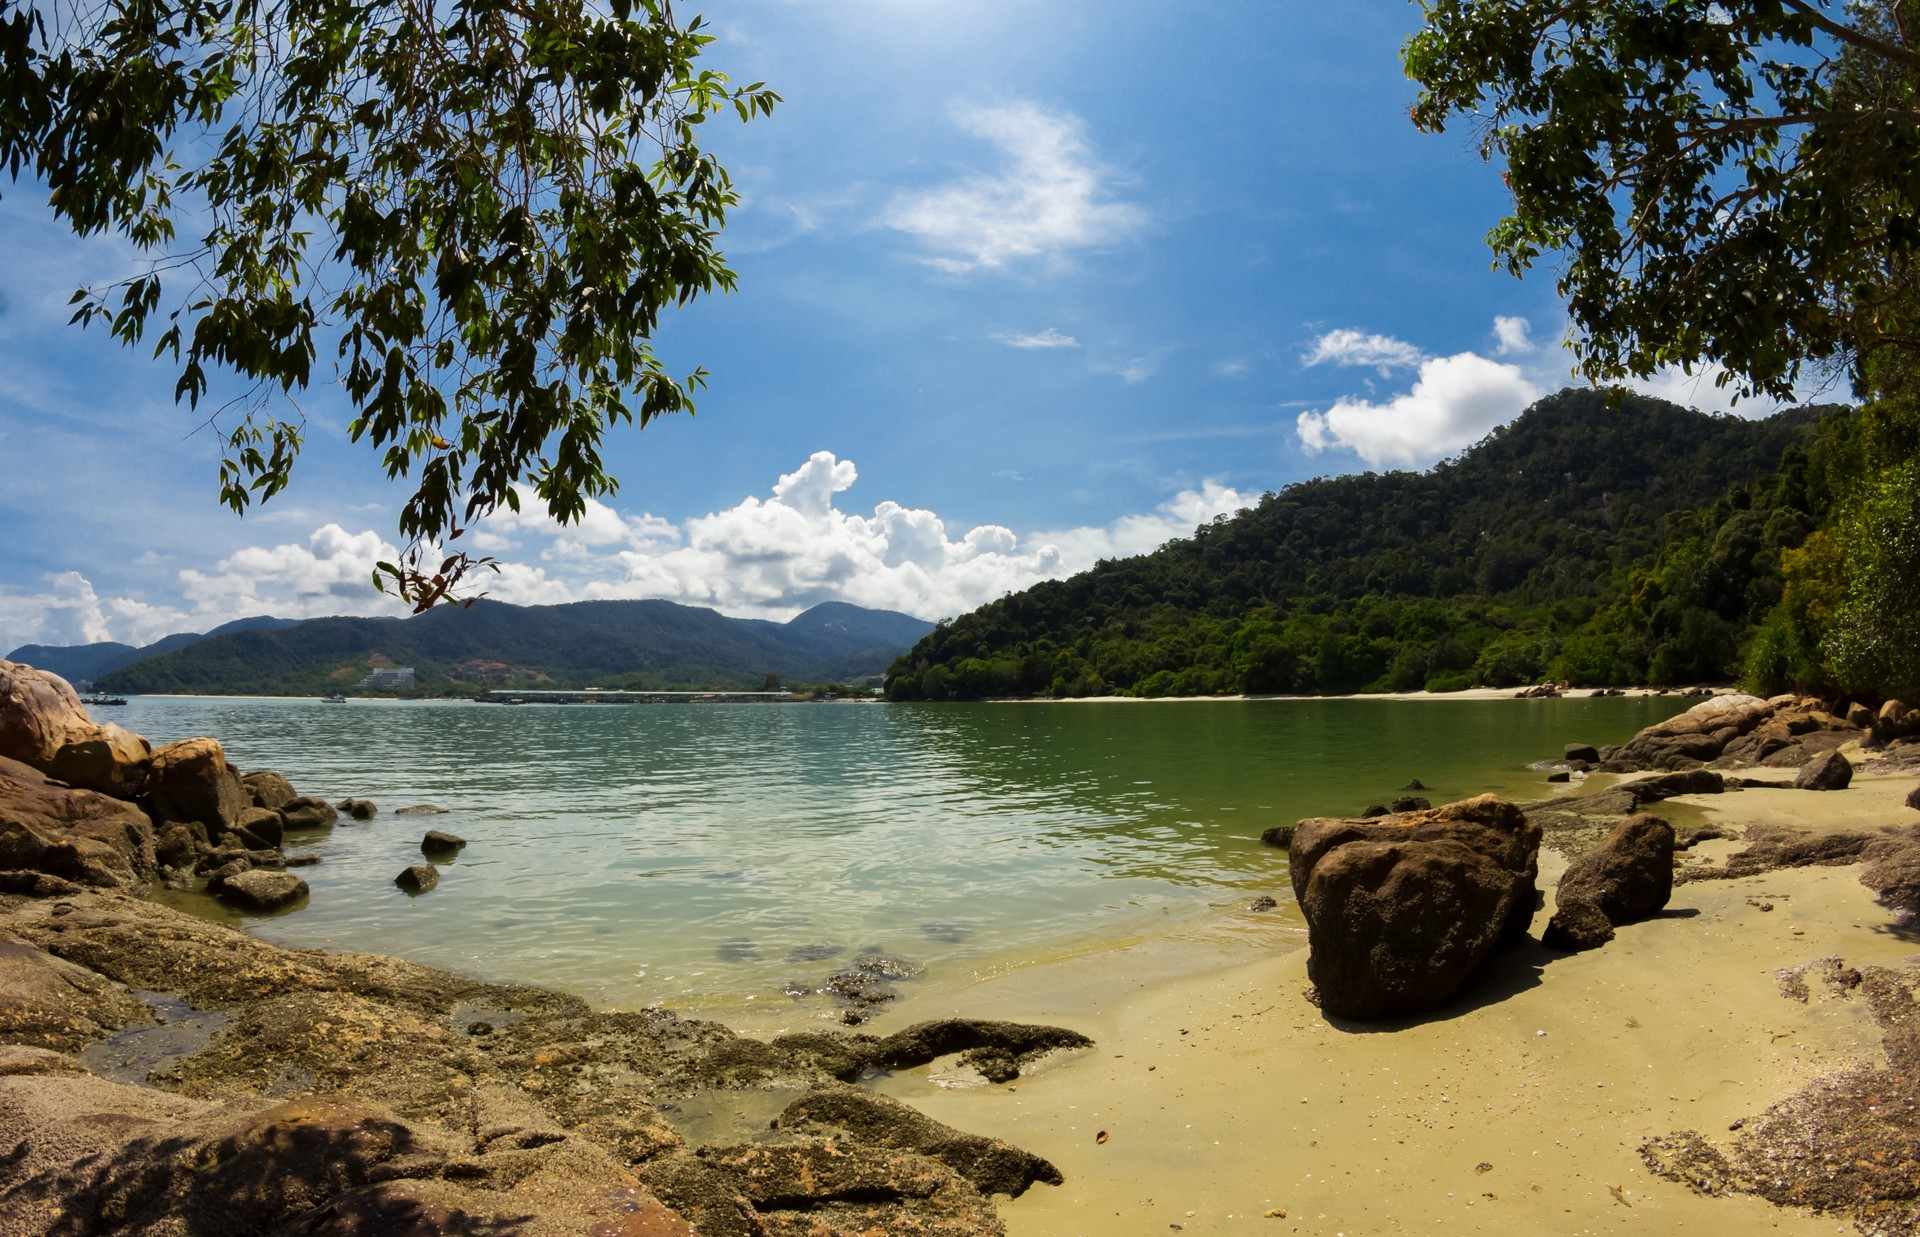 Secluded beaches in Penang National Park